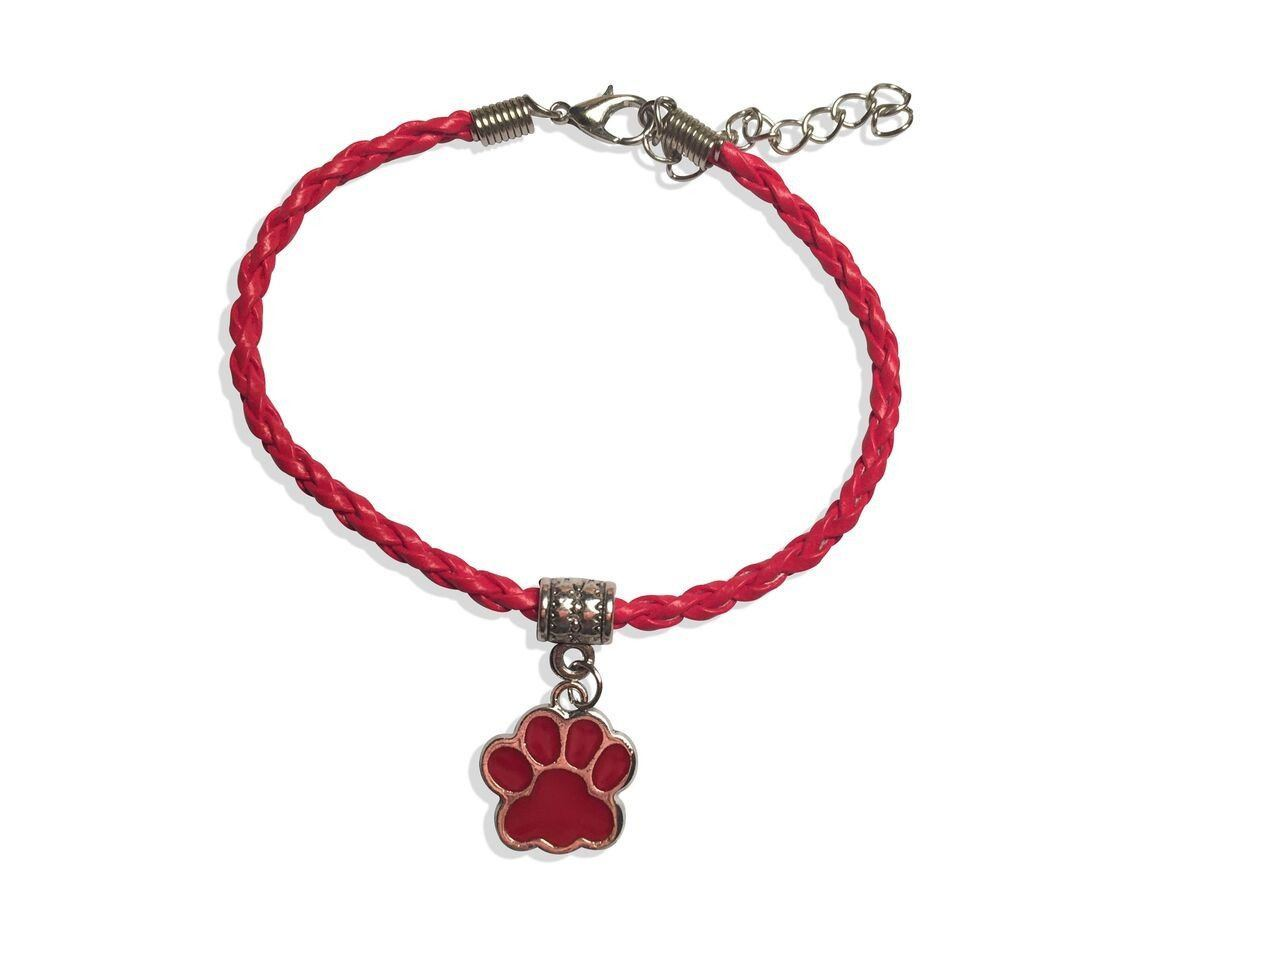 Leather Bracelet - Paw Leather Bracelet In Red